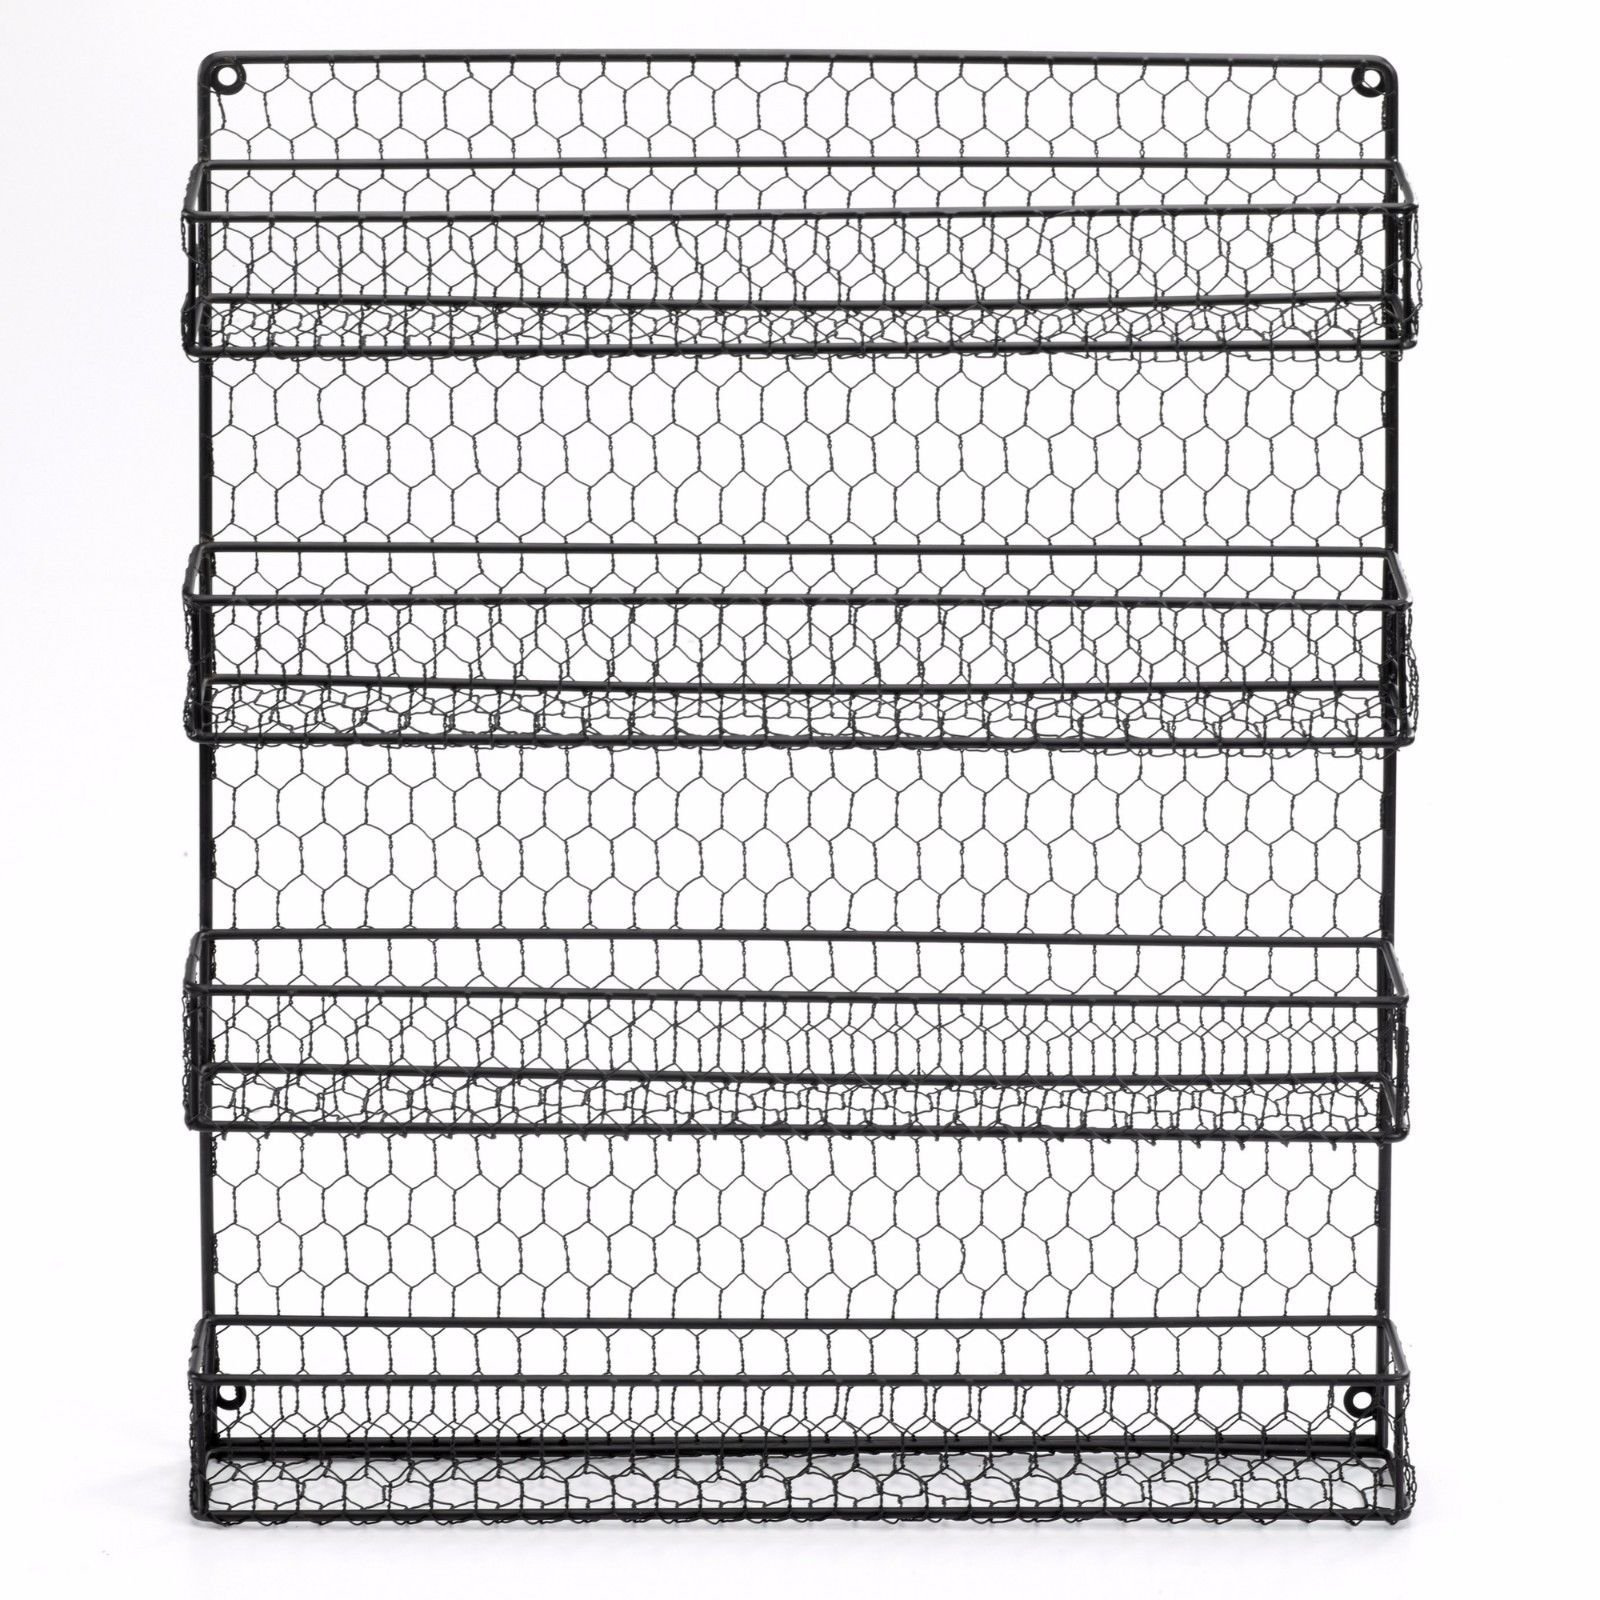 4 Tier Country Metal Chicken Wire Spice Rack From 1790 Cabinet Wall ...